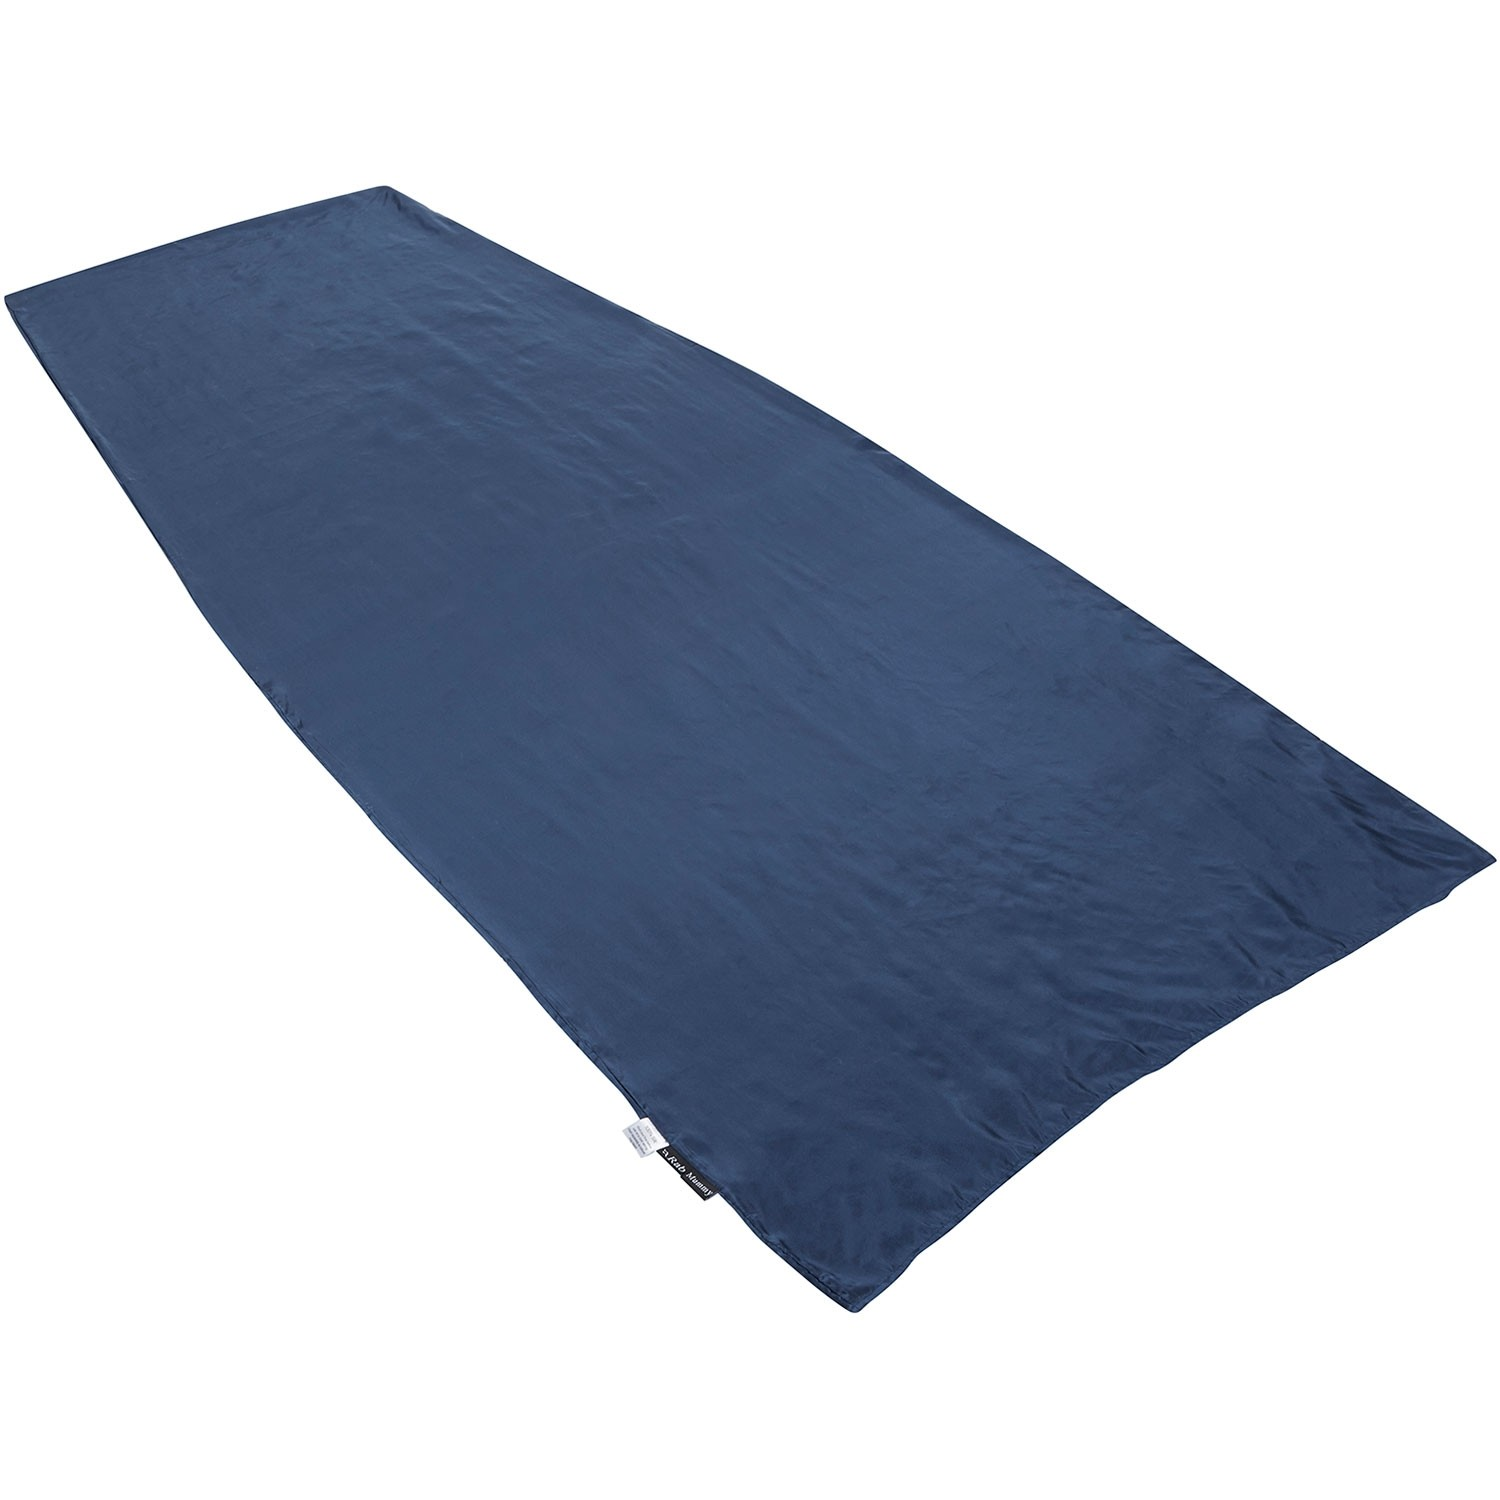 Rab Silk Sleeping Bag Liner